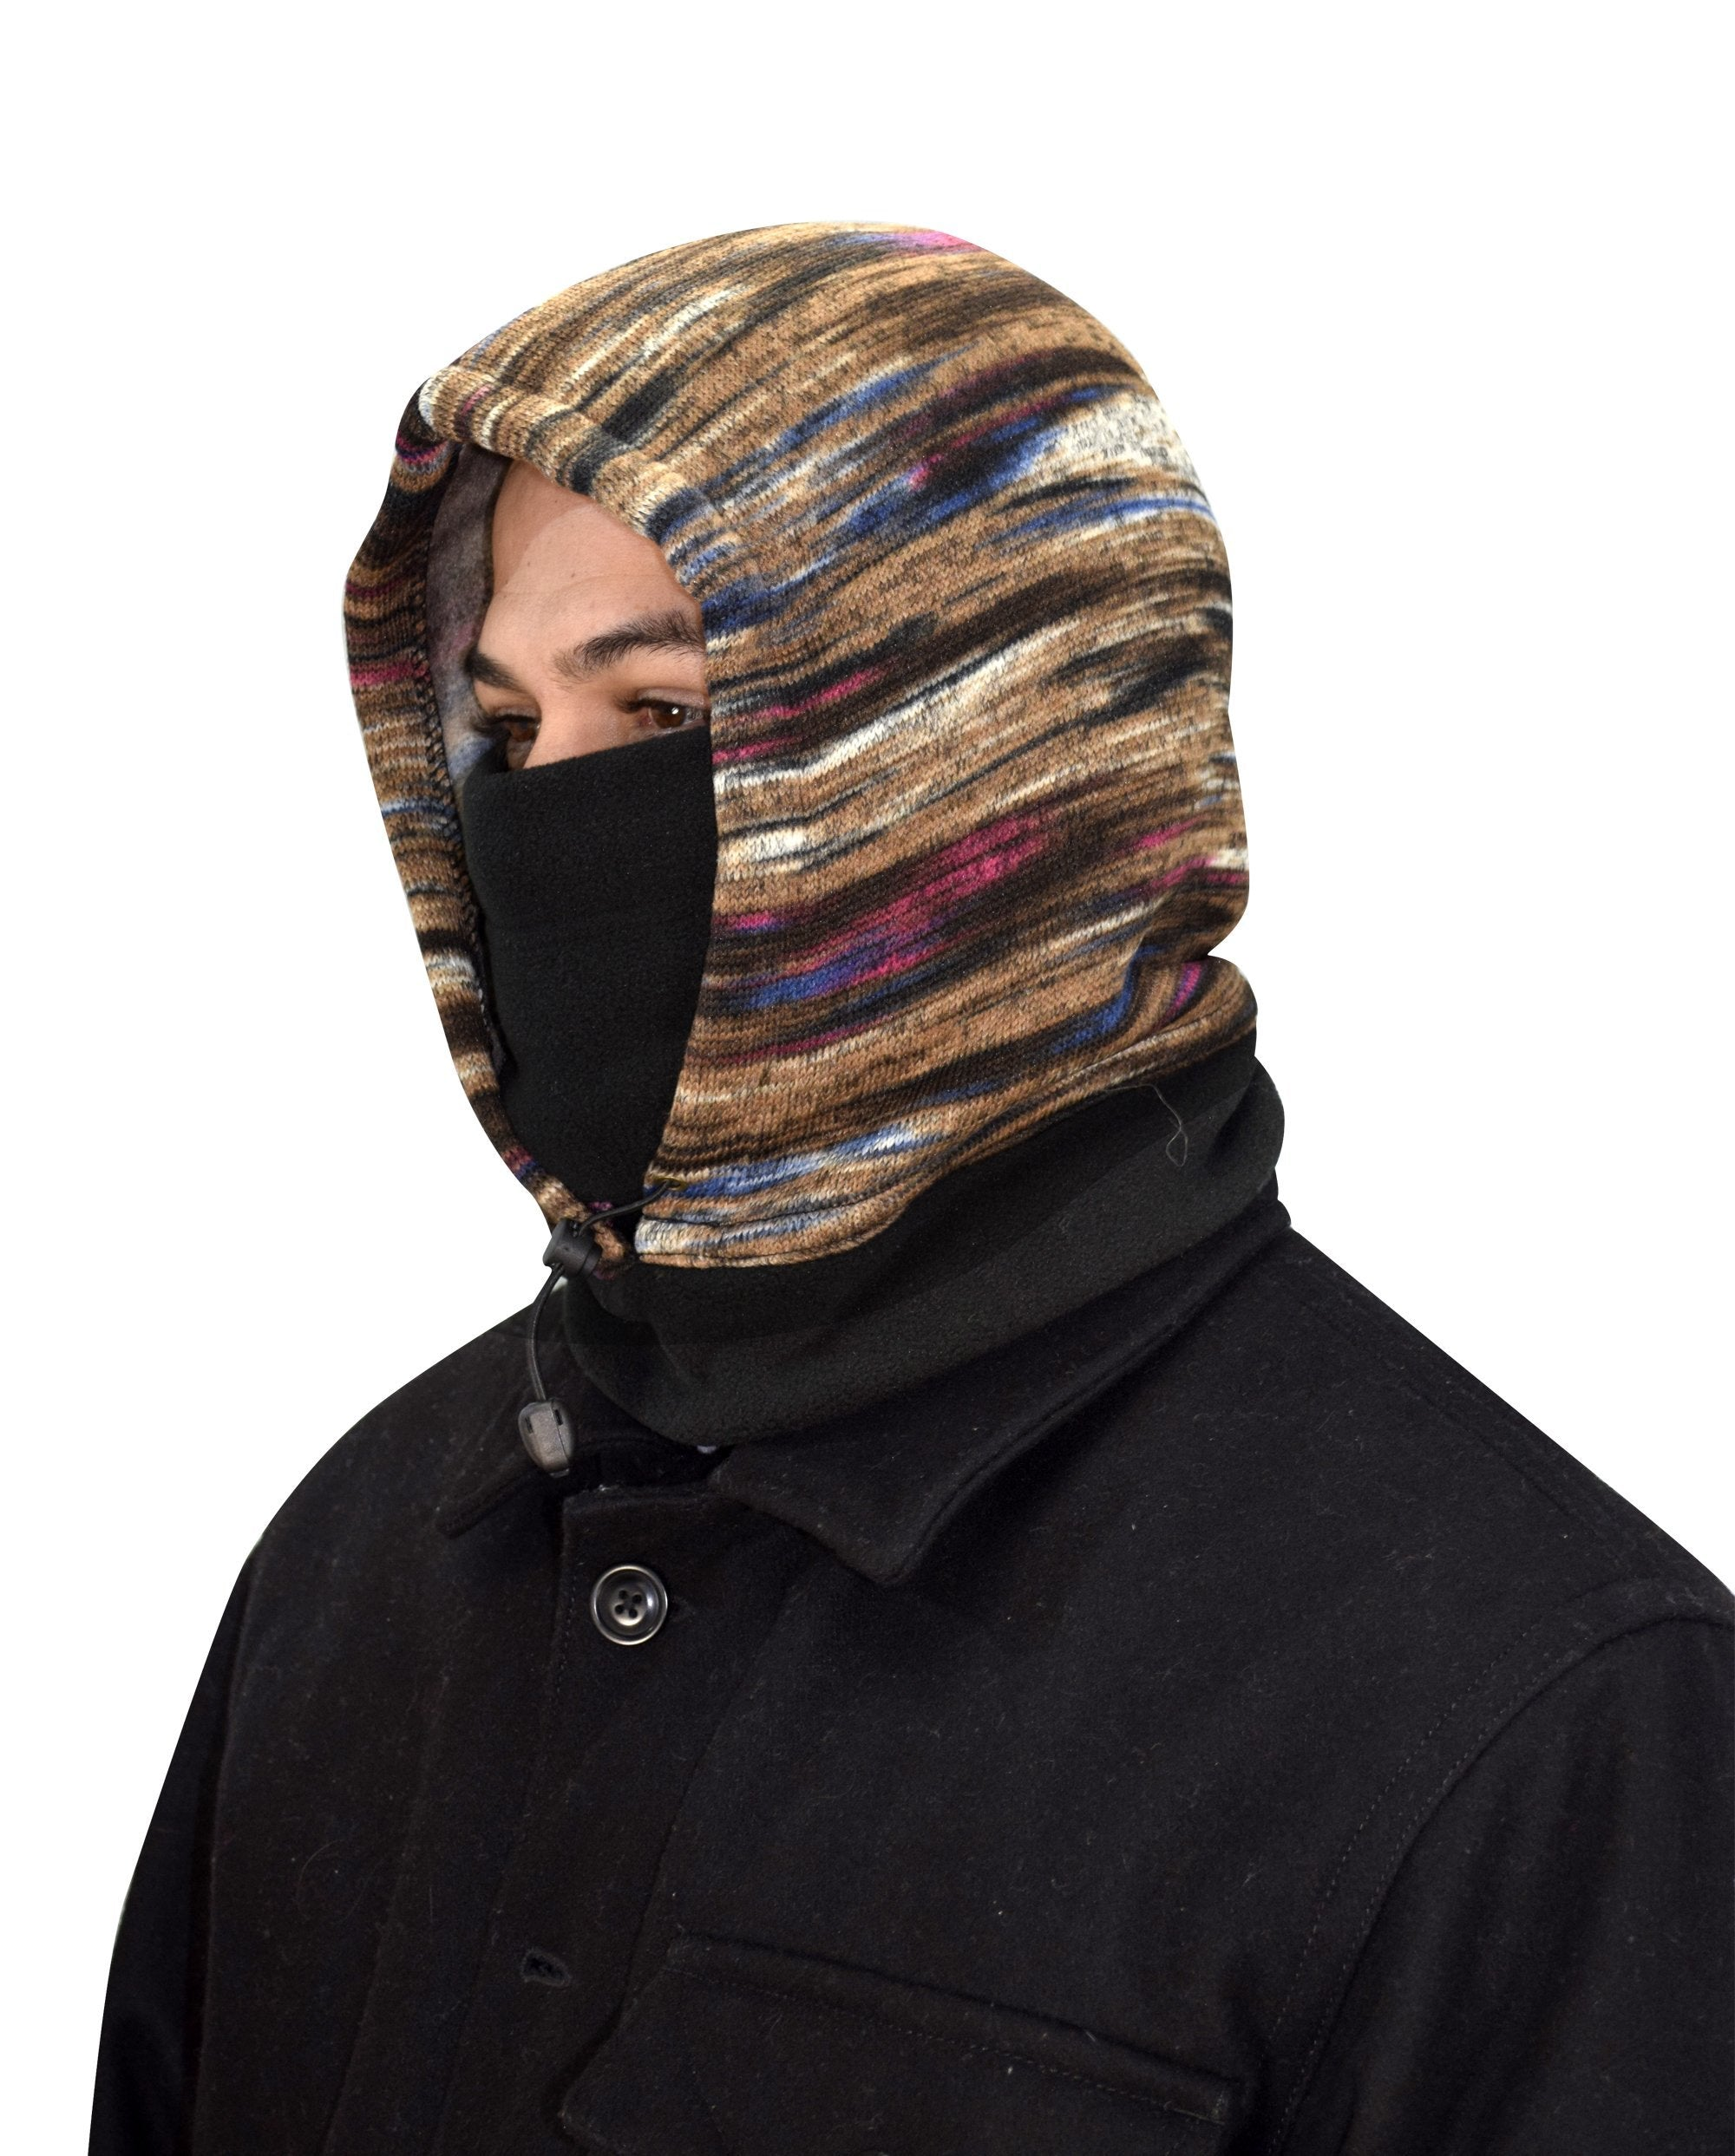 Thick Knit One Hole Facemask Balaclava